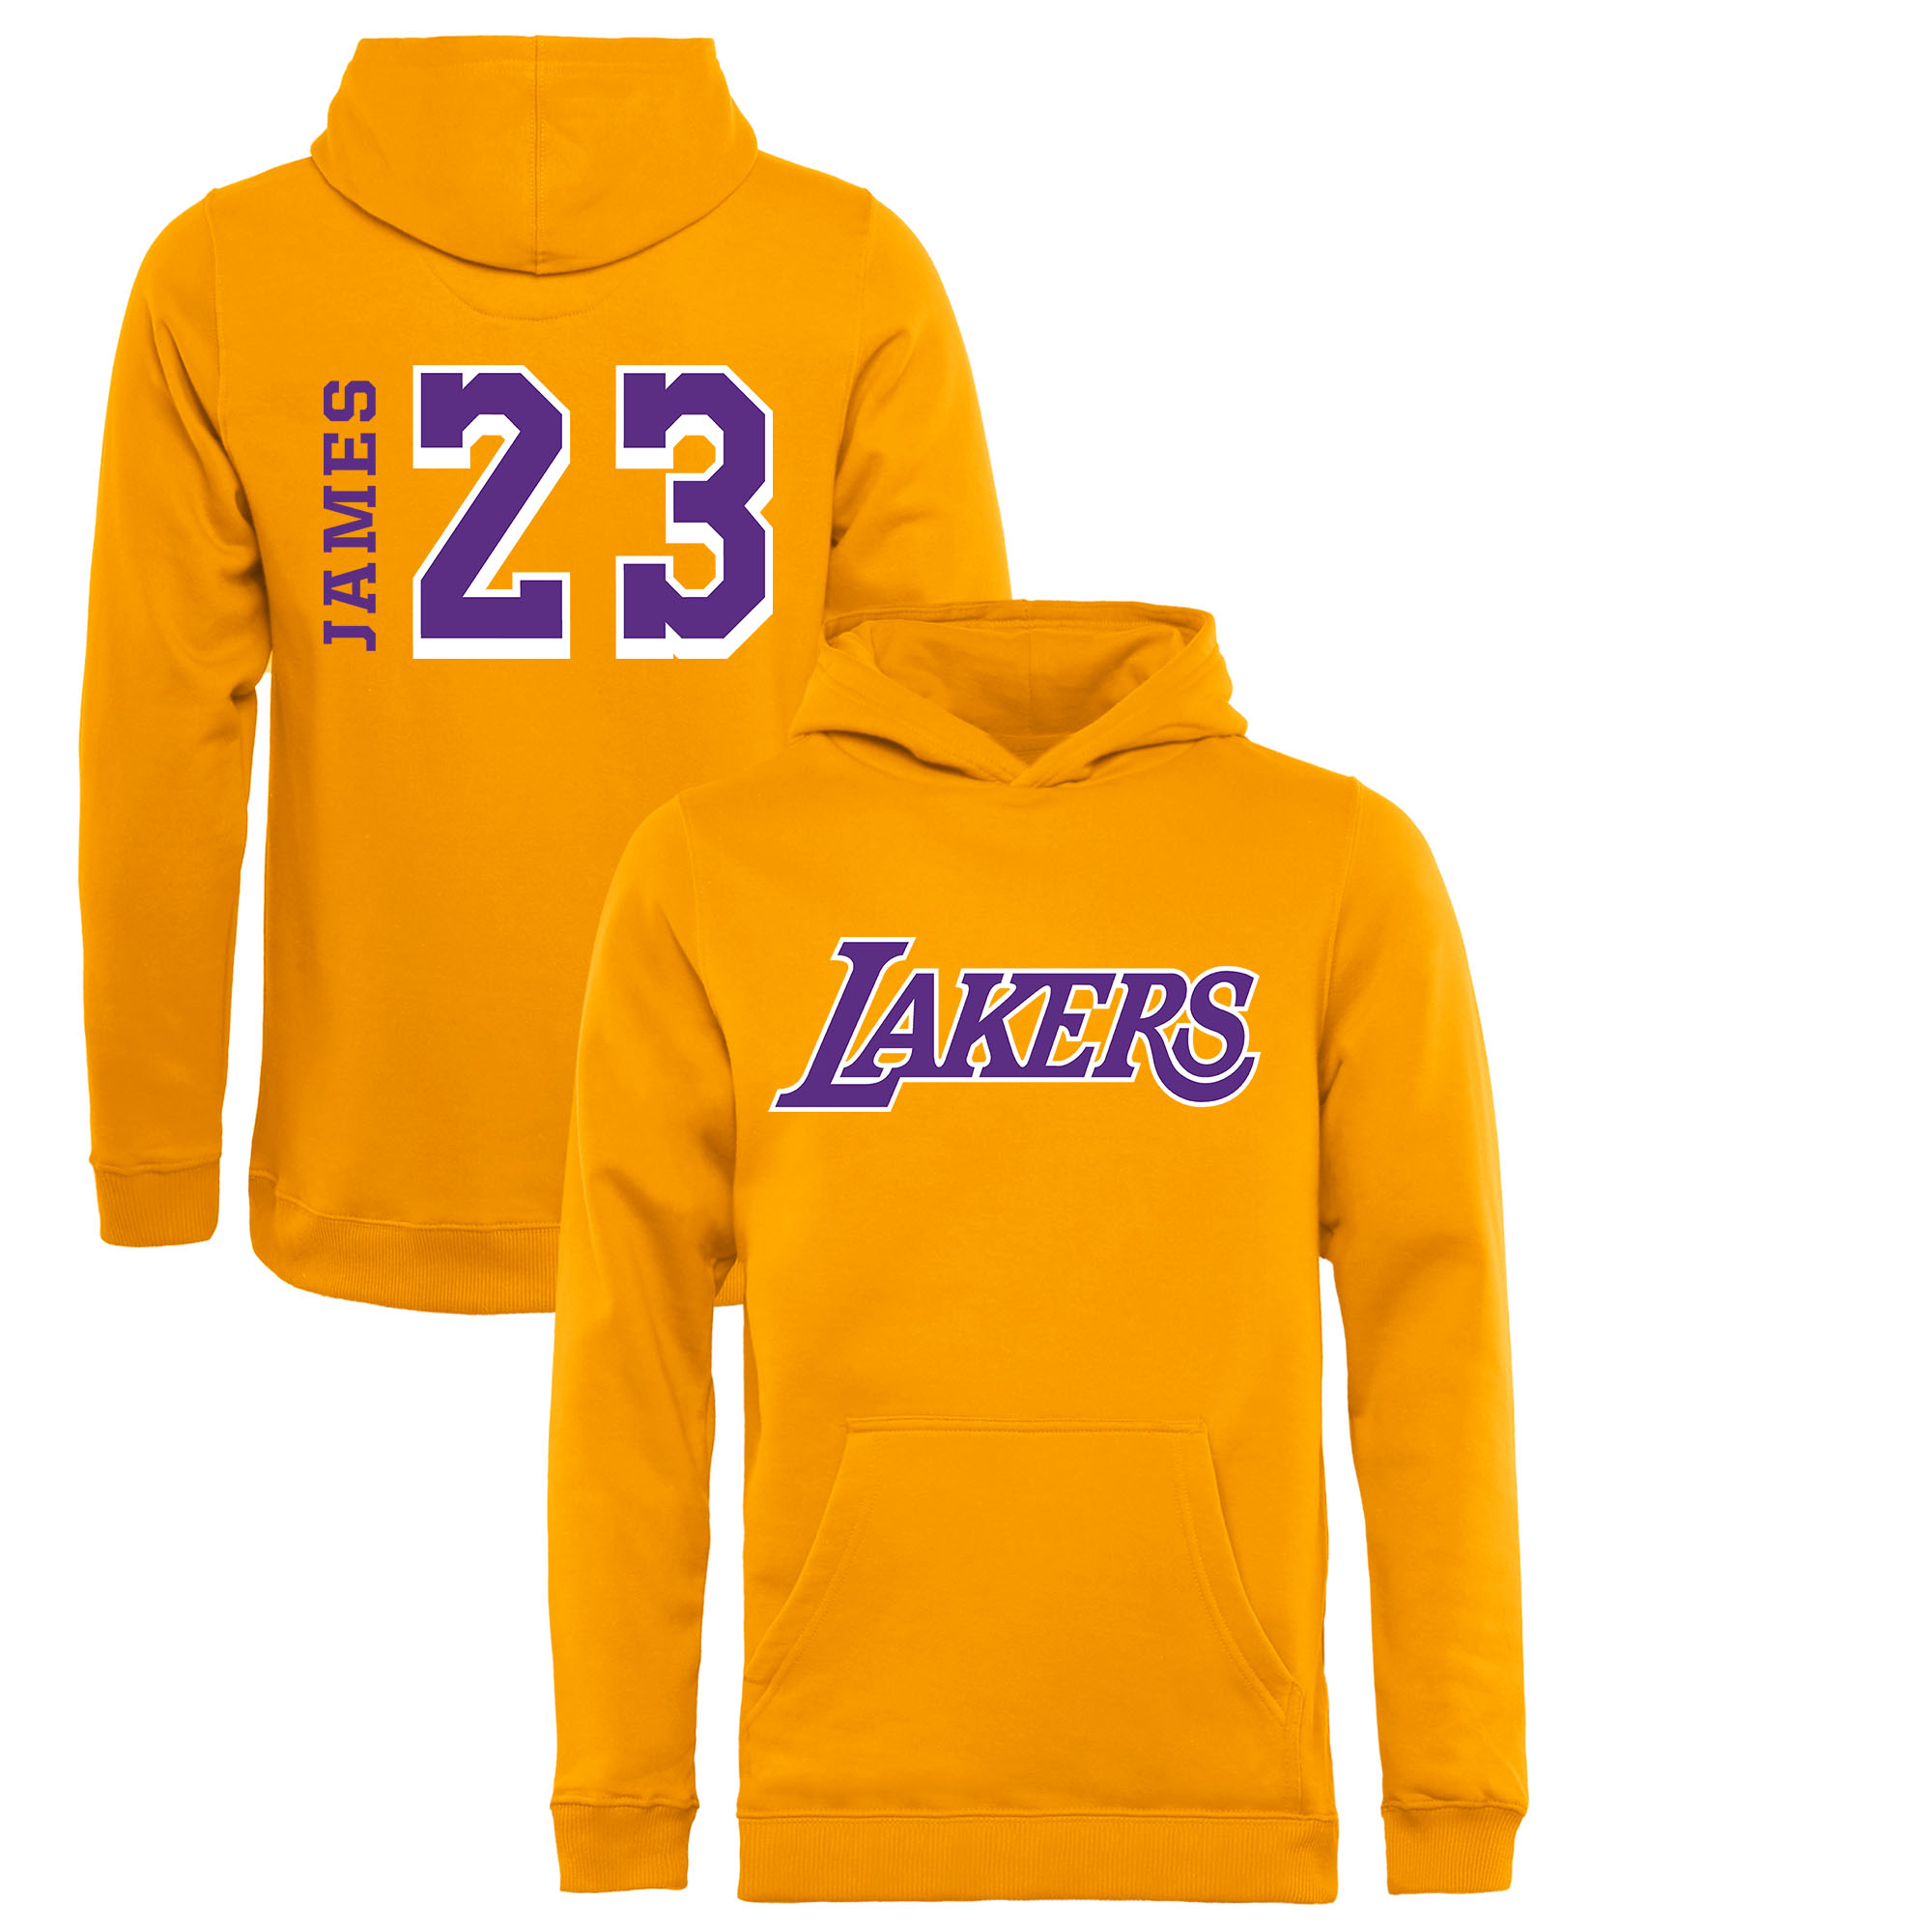 LeBron James Los Angeles Lakers Fanatics Branded Youth Sidesweep Name   Number  Pullover Hoodie - Gold - Walmart.com 17dc4af2e